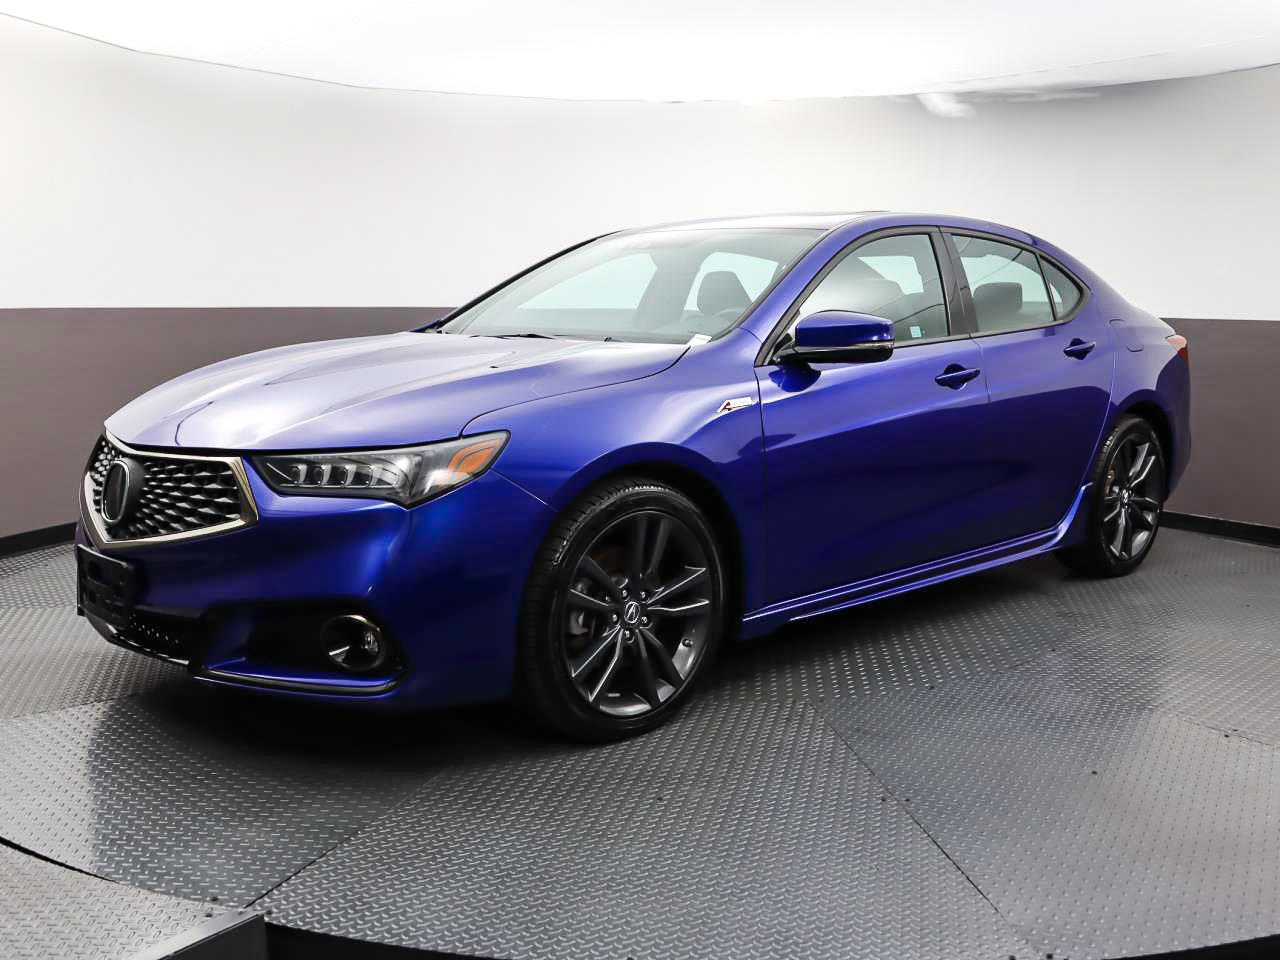 Used ACURA TLX 2018 WEST PALM W/A-SPEC PKG